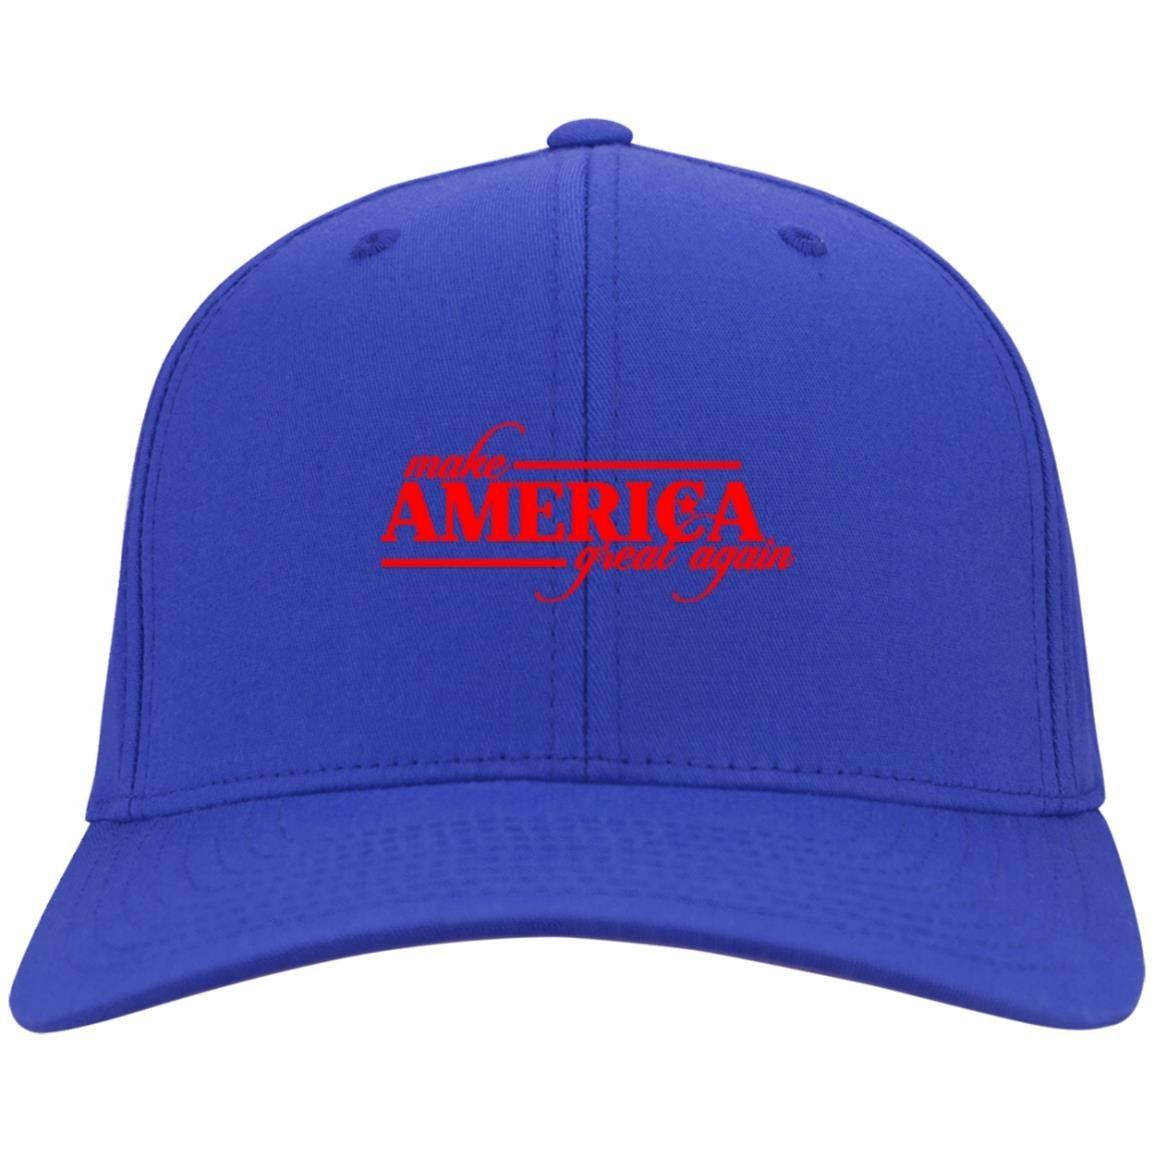 Make America Great Again - Port & Co. Twill Cap Royal